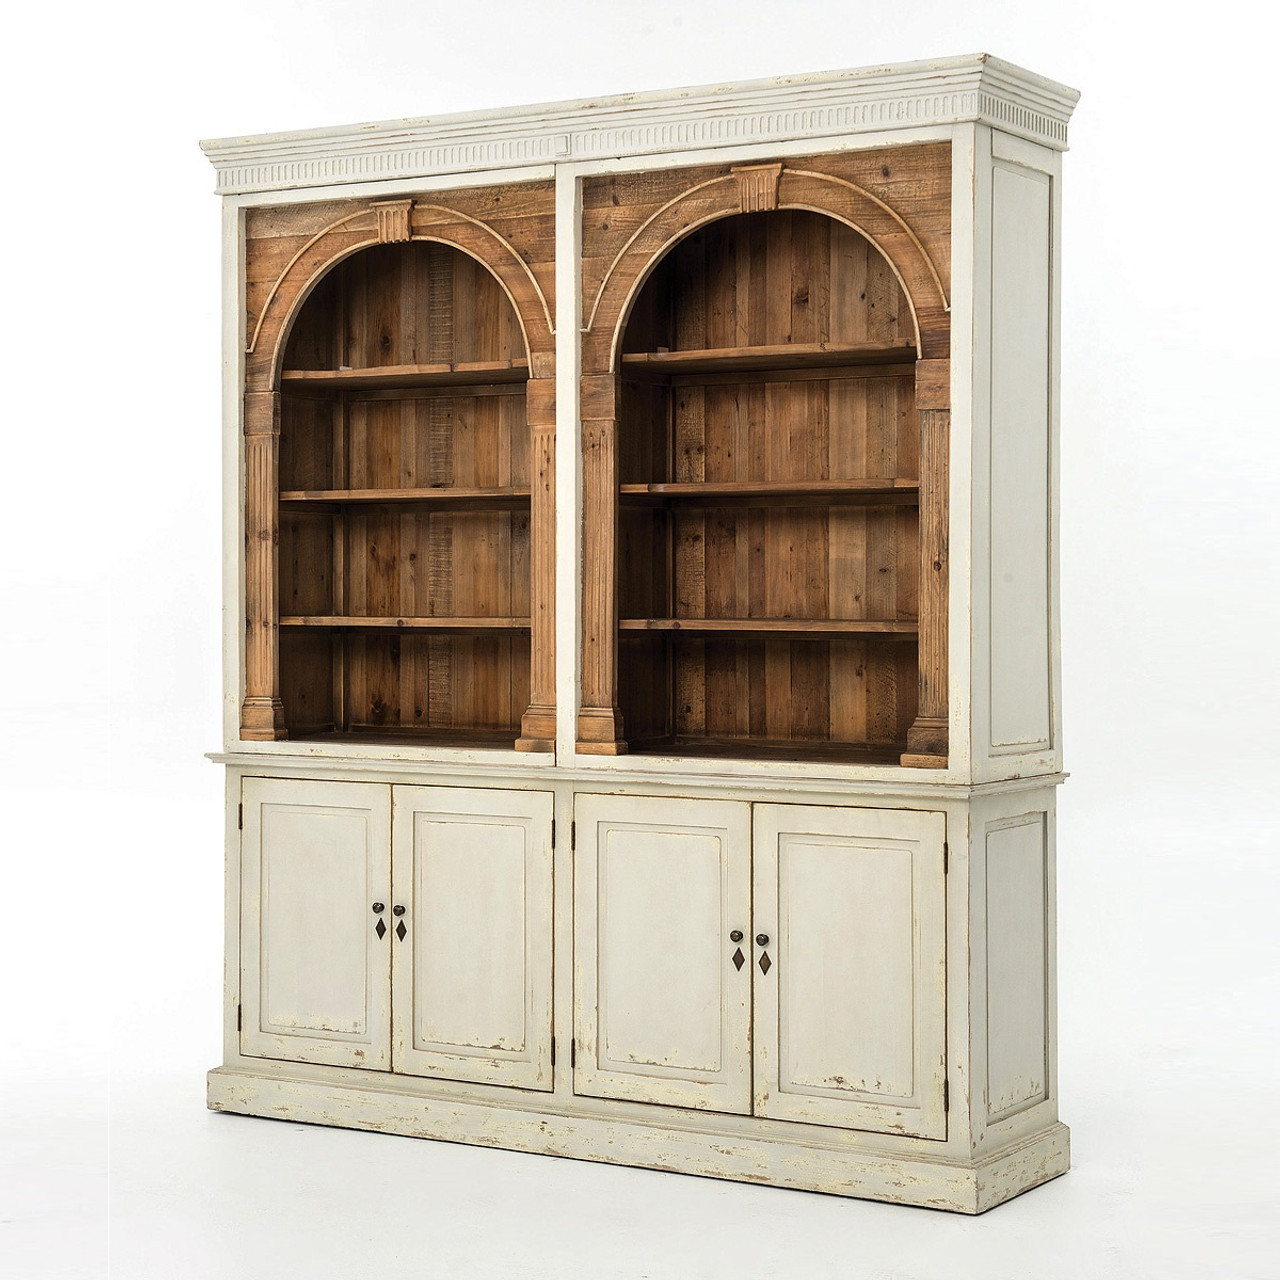 Attractive Swedish Grey Rustic Reclaimed Wood China Cabinet Hutch